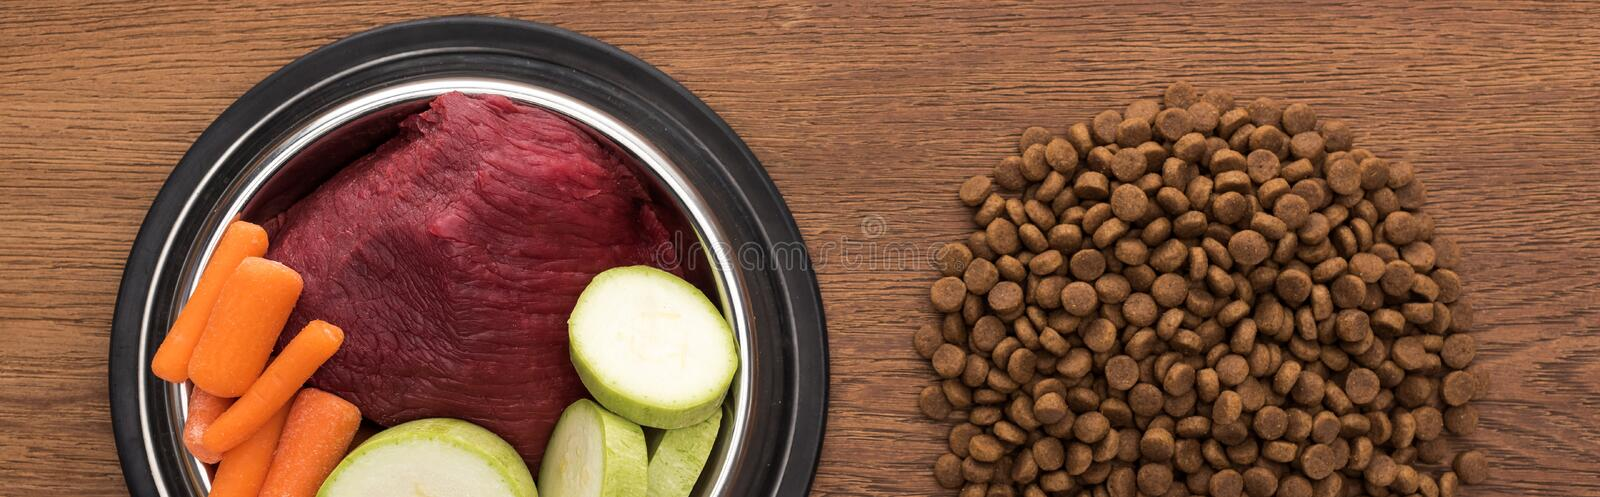 Top view of dry pet food near raw vegetables and meat in bowl on wooden table, panoramic shot. Top view of dry pet food near raw vegetables and meat in bowl on stock image